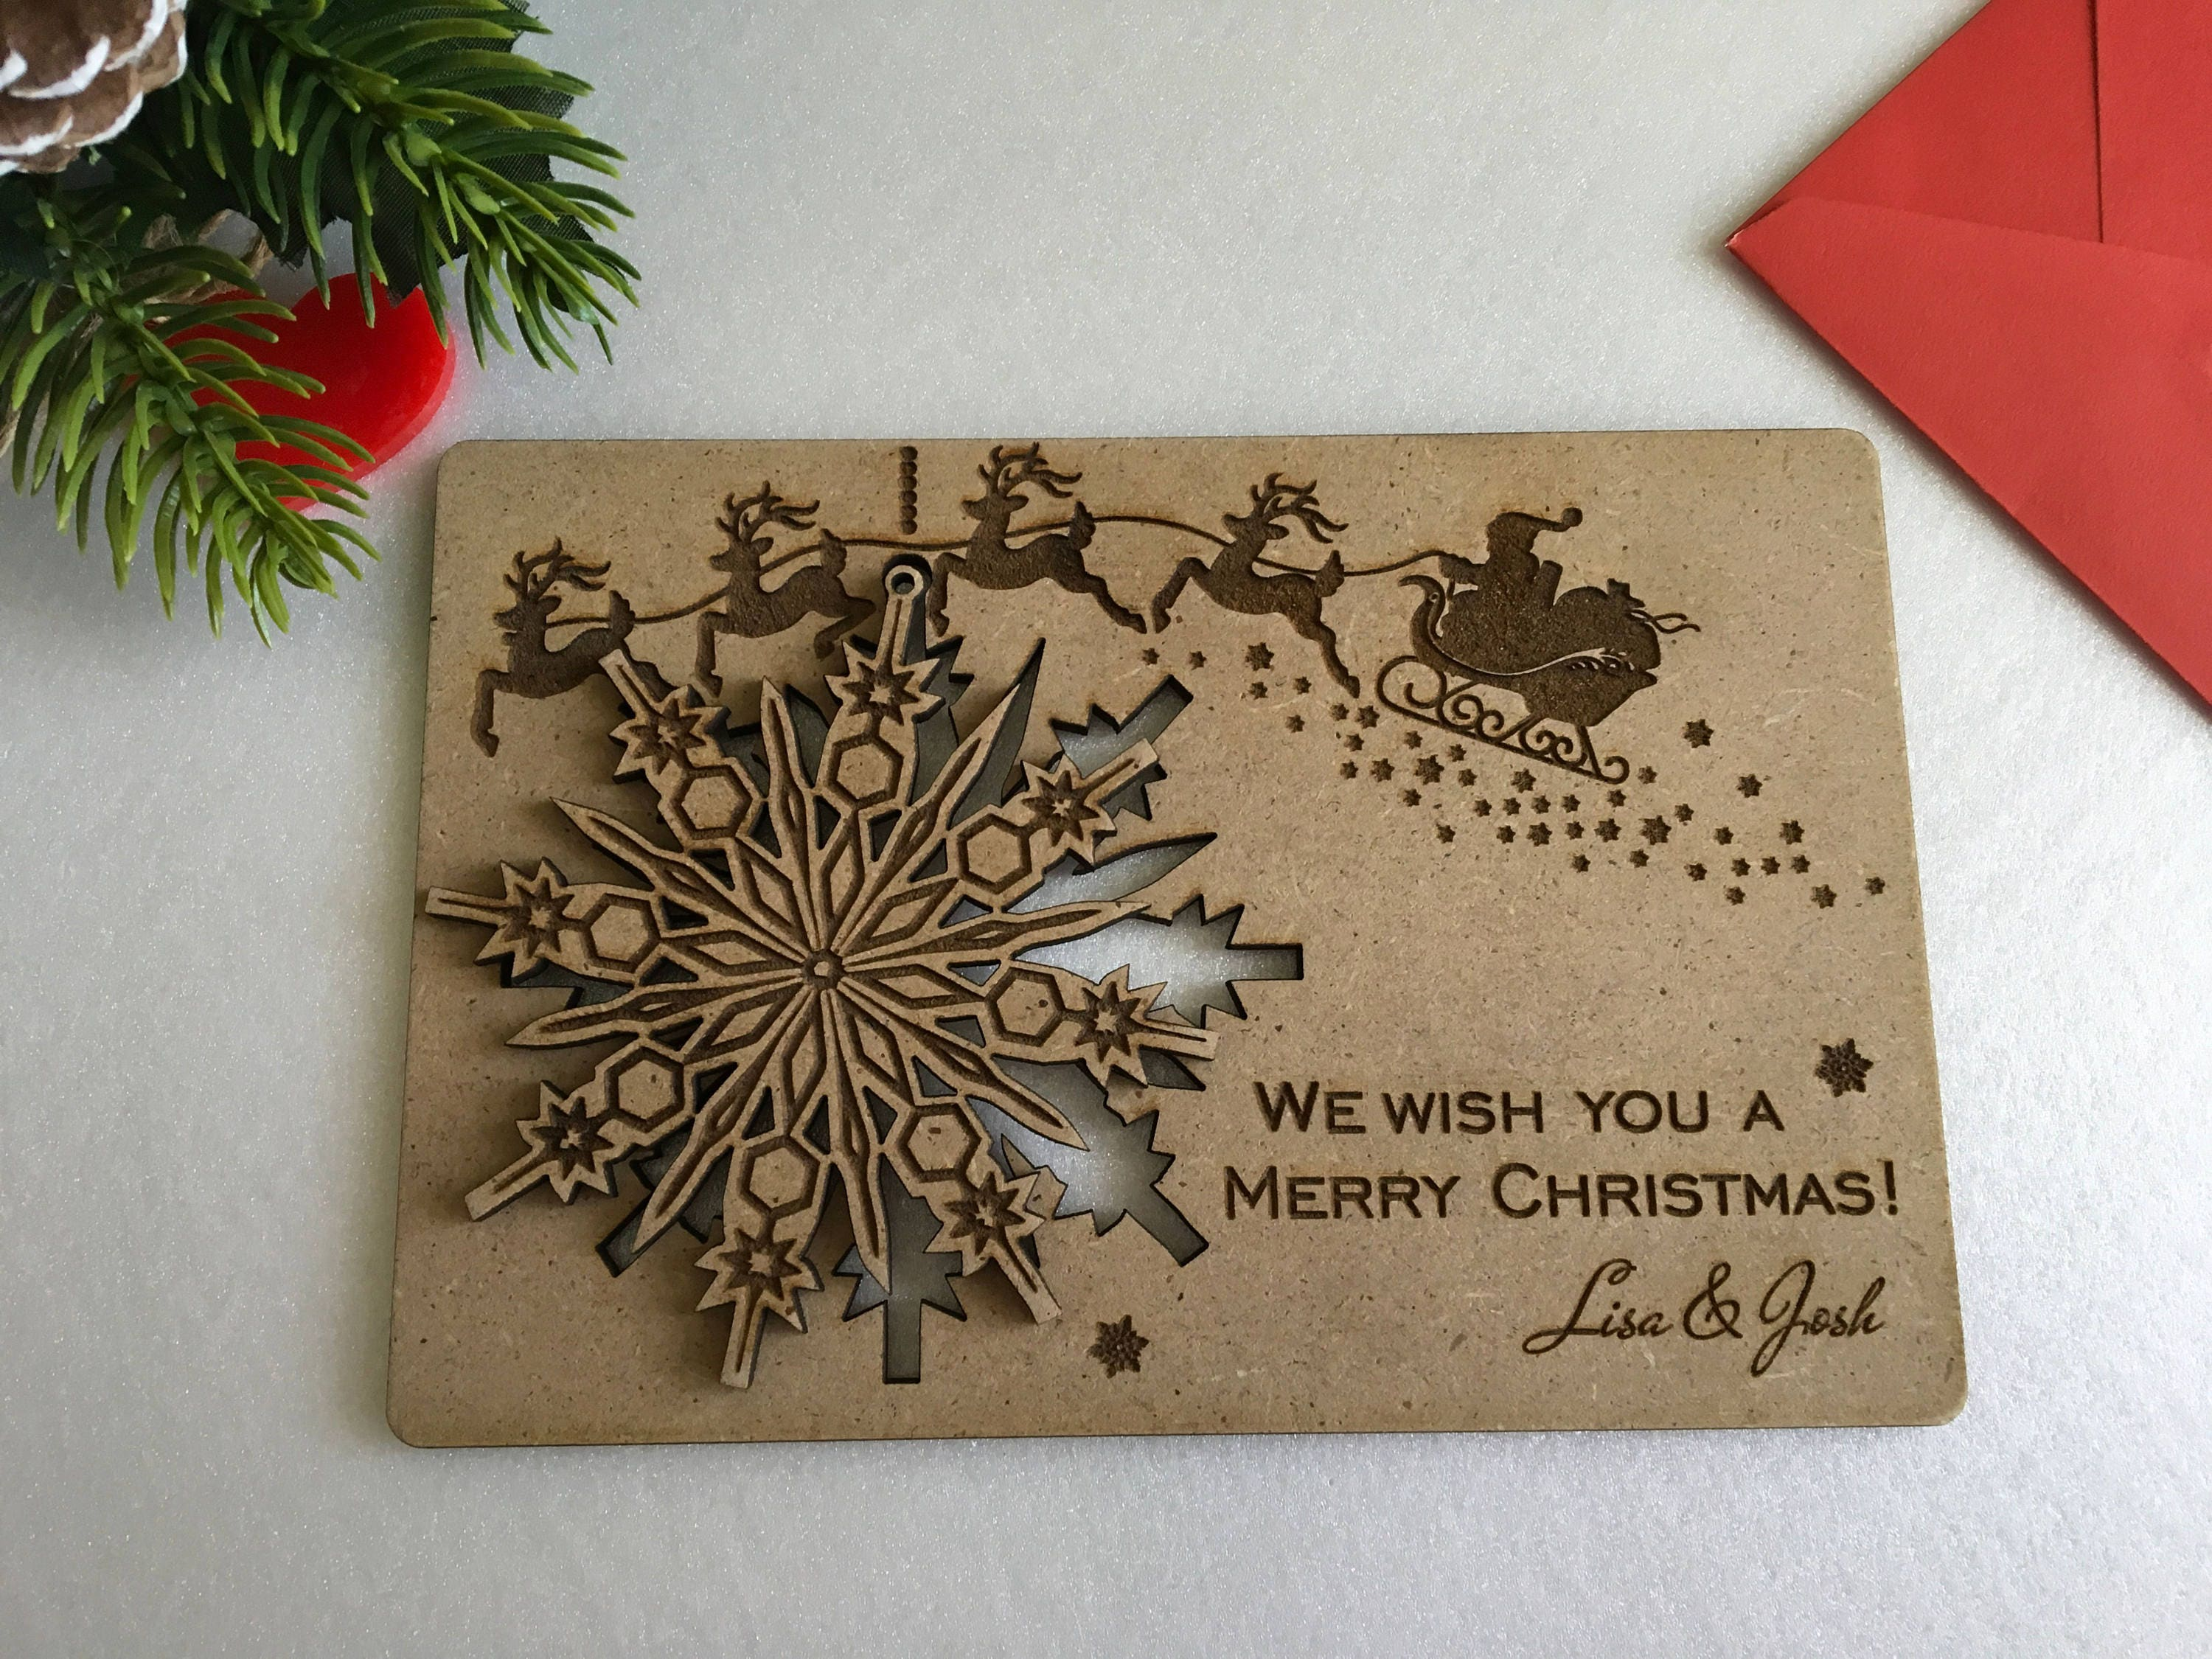 Christmas cards personalised wooden greeting cards wood snowflake christmas cards personalised wooden greeting cards wood snowflake card christmas gift engraved ornament xmas cards merry christmas holiday m4hsunfo